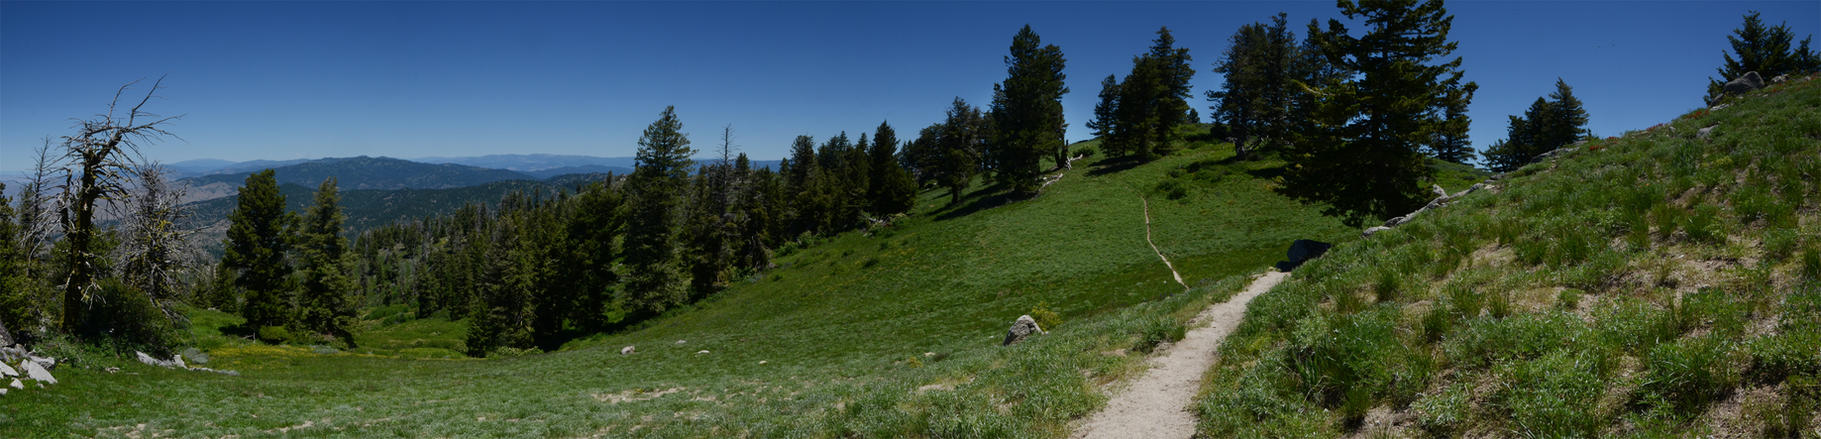 Shafer Butte Hike by eRality